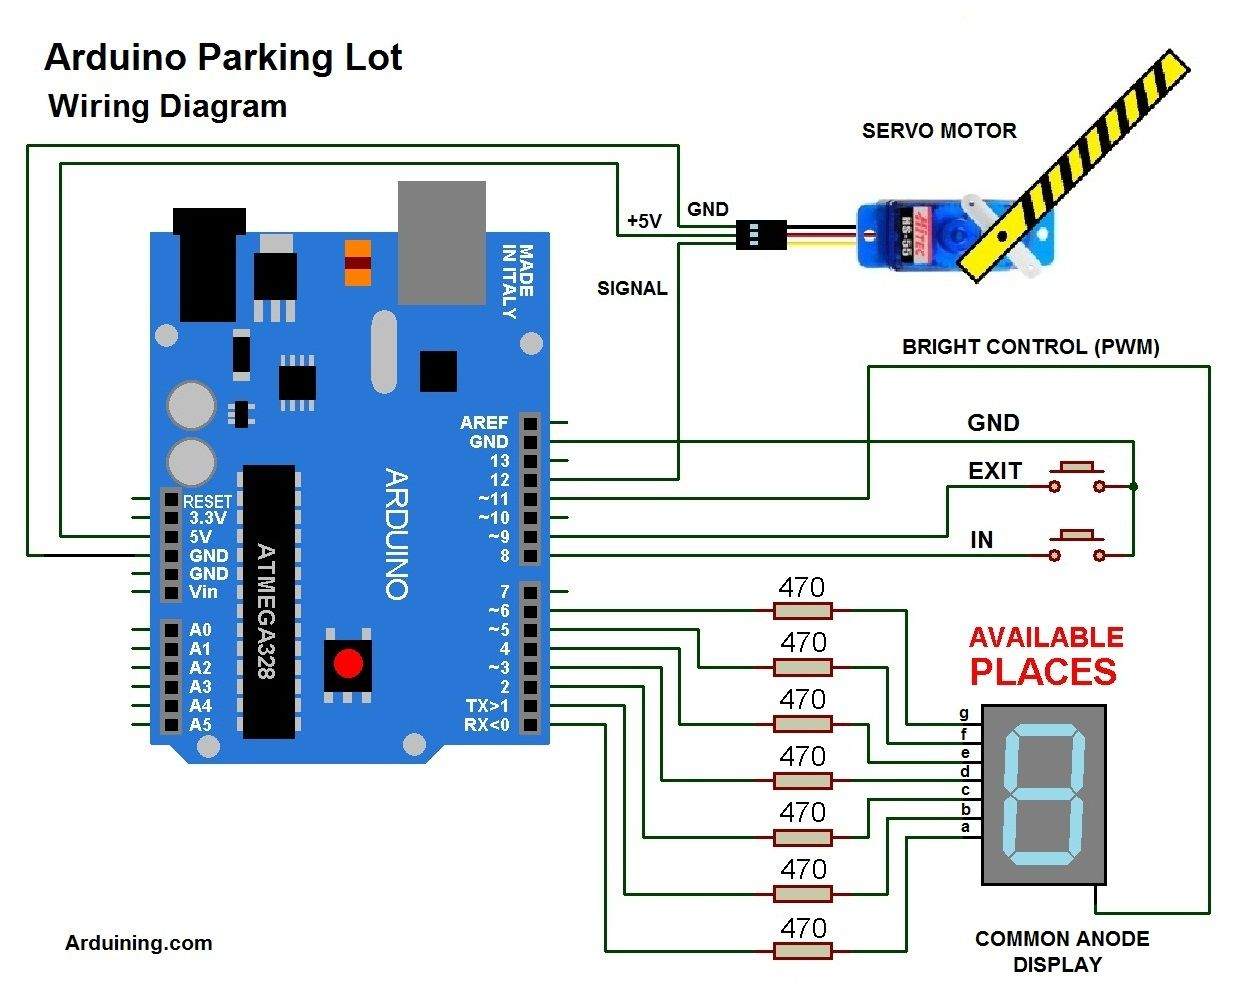 hight resolution of wiring diagram here is the code parkingl02 pde arduining com 08 jul 2012 code used in the production of the youtube material